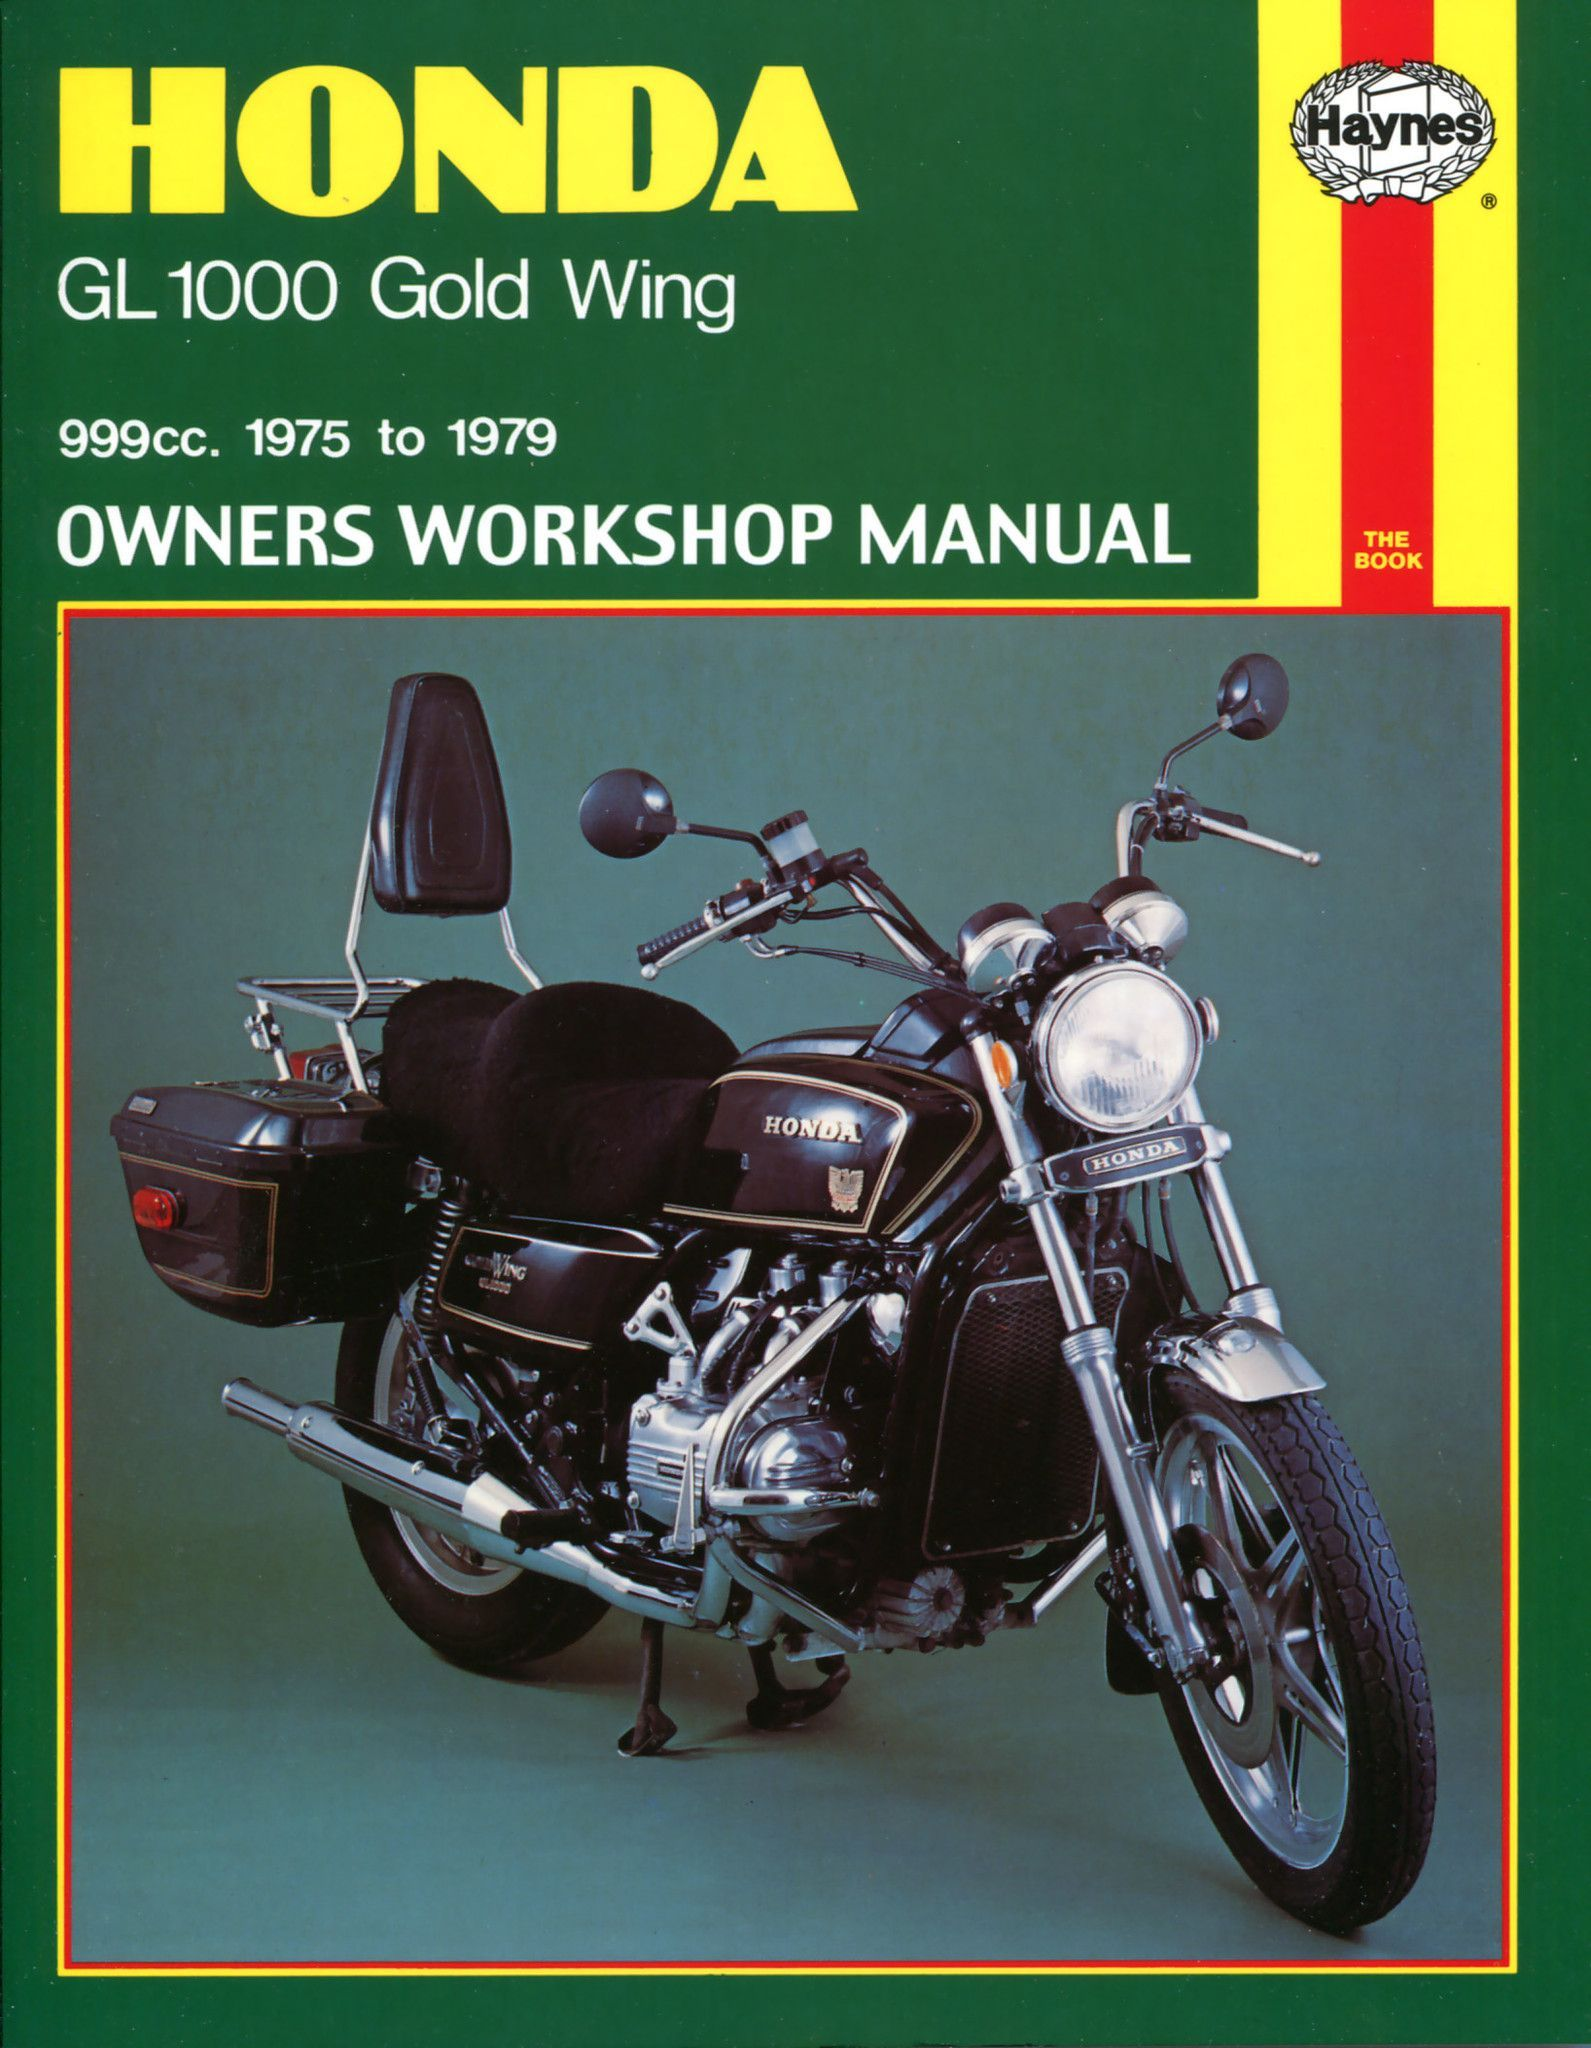 Clymer m447 3 service repair manual for kawasaki kx125 kx250 kx500 products and manual